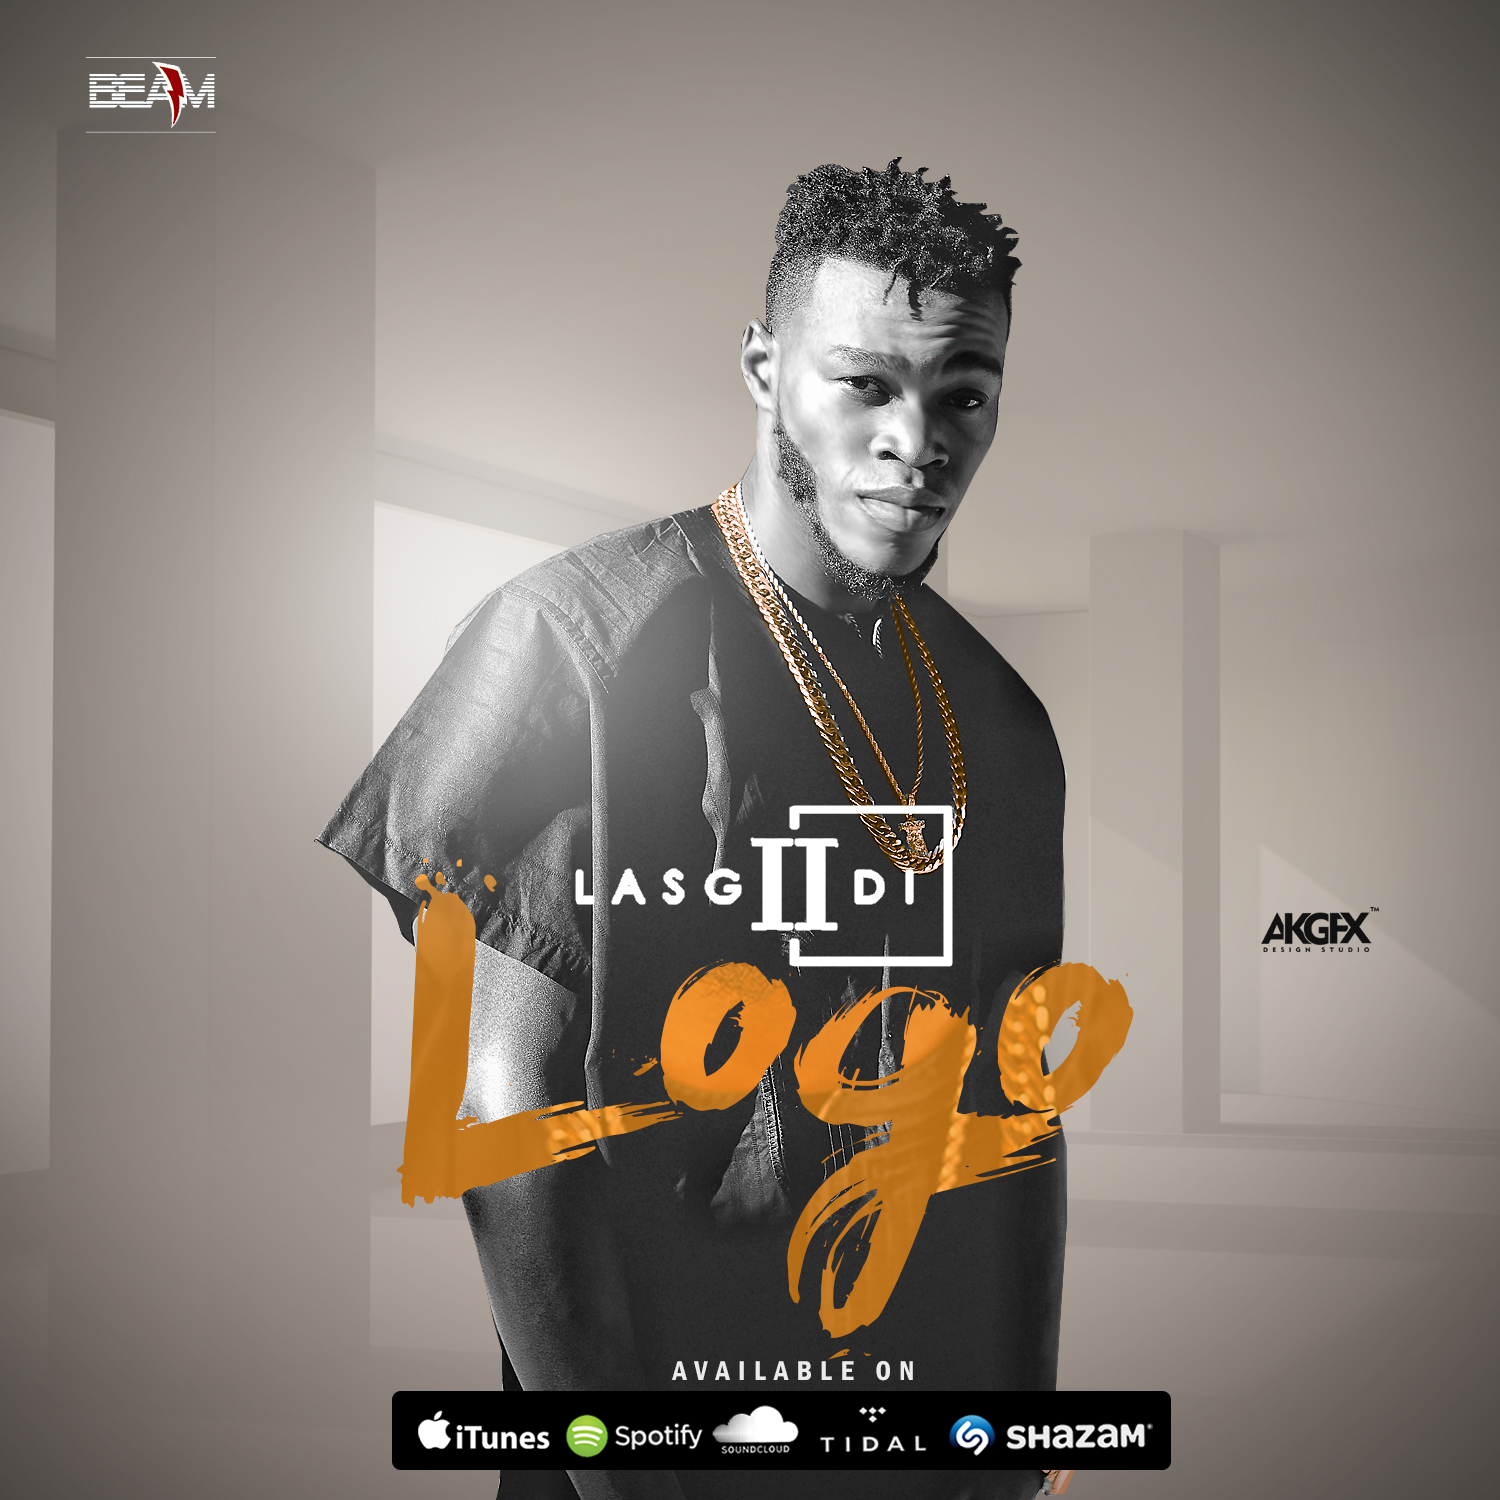 LasGiiDi - LOGO Official Cover